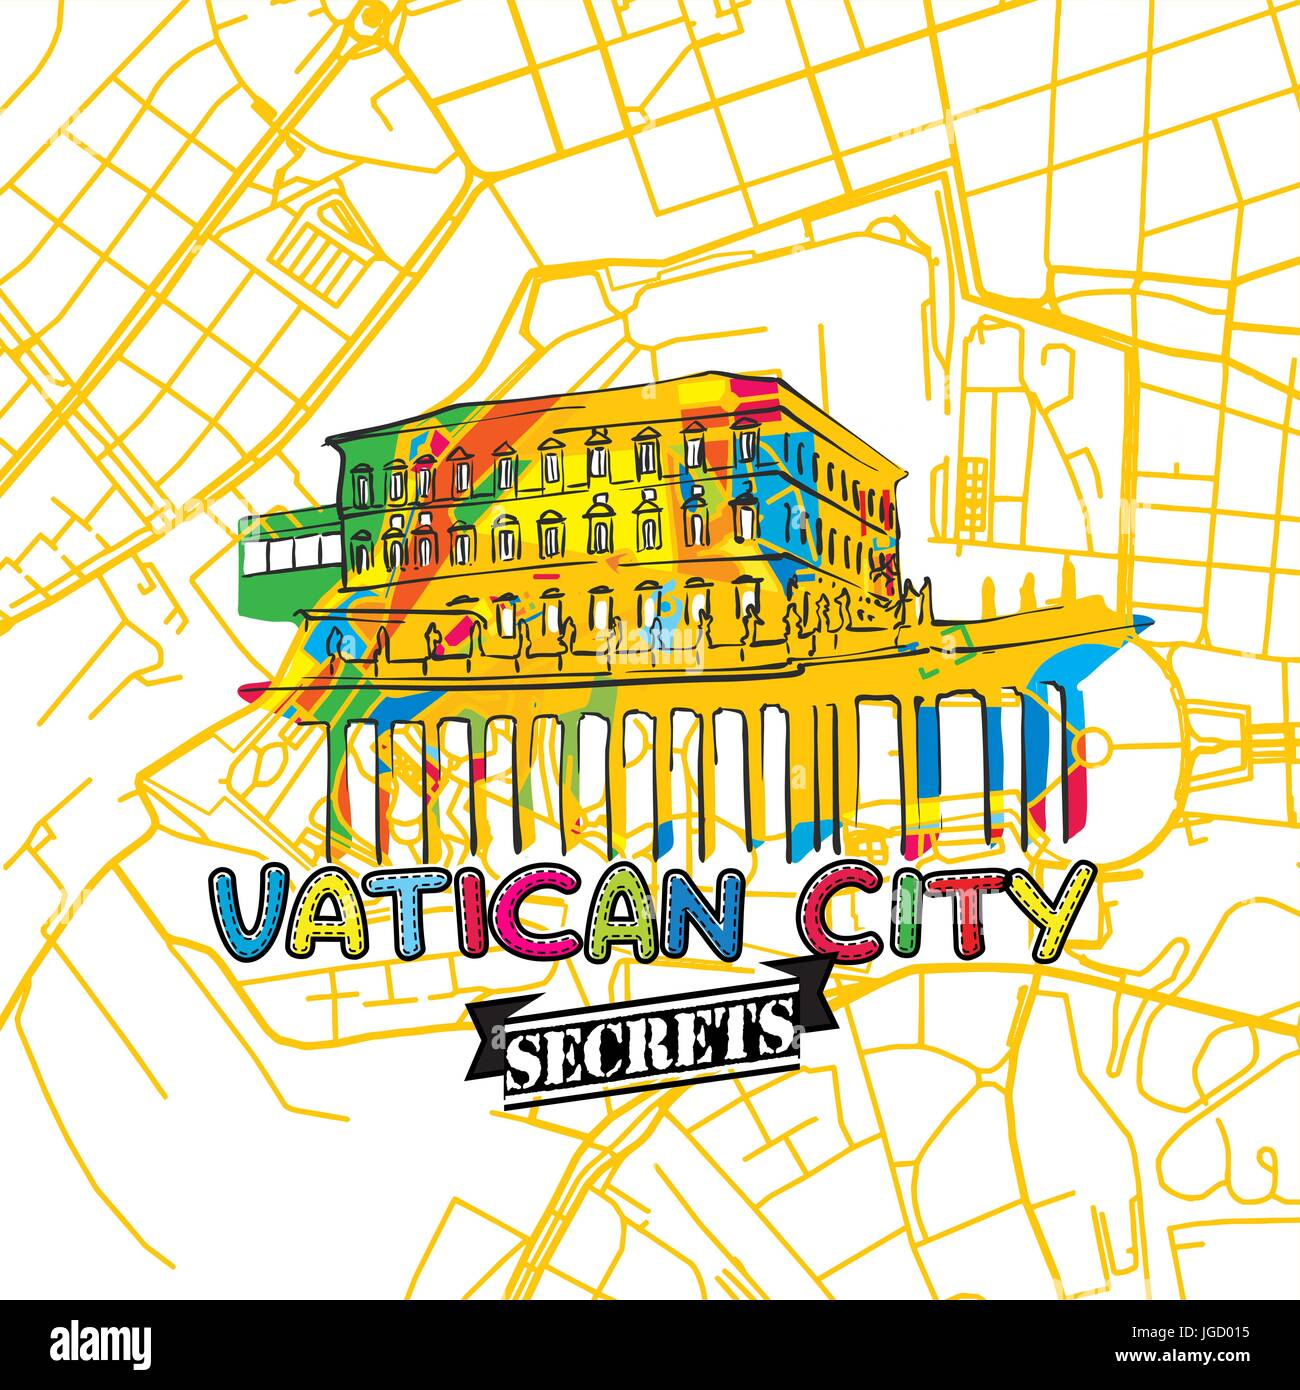 Vatican Travel Secrets Art Map for mapping experts and travel guides. Handmade city logo, typo badge and hand drawn - Stock Image